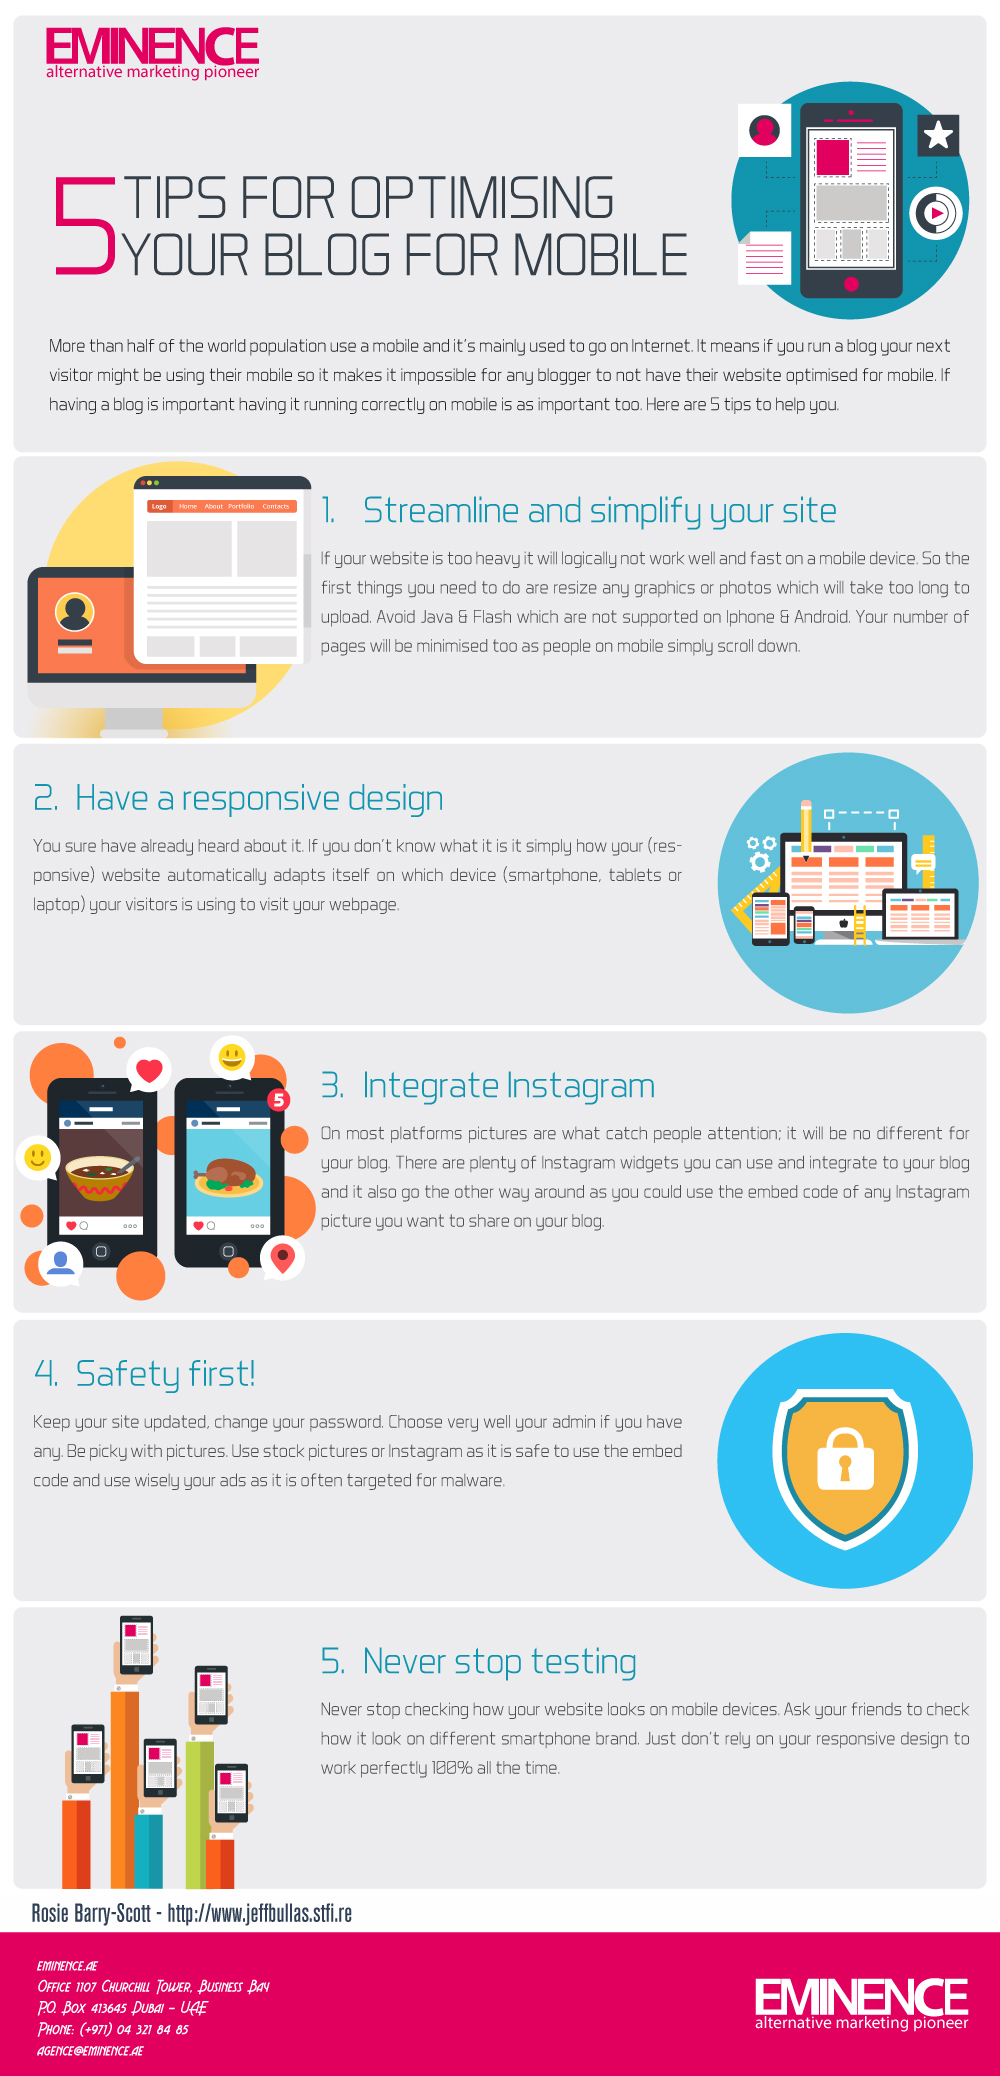 5-Tips-for-Optimising-Your-Blog-for-Mobile-infographie